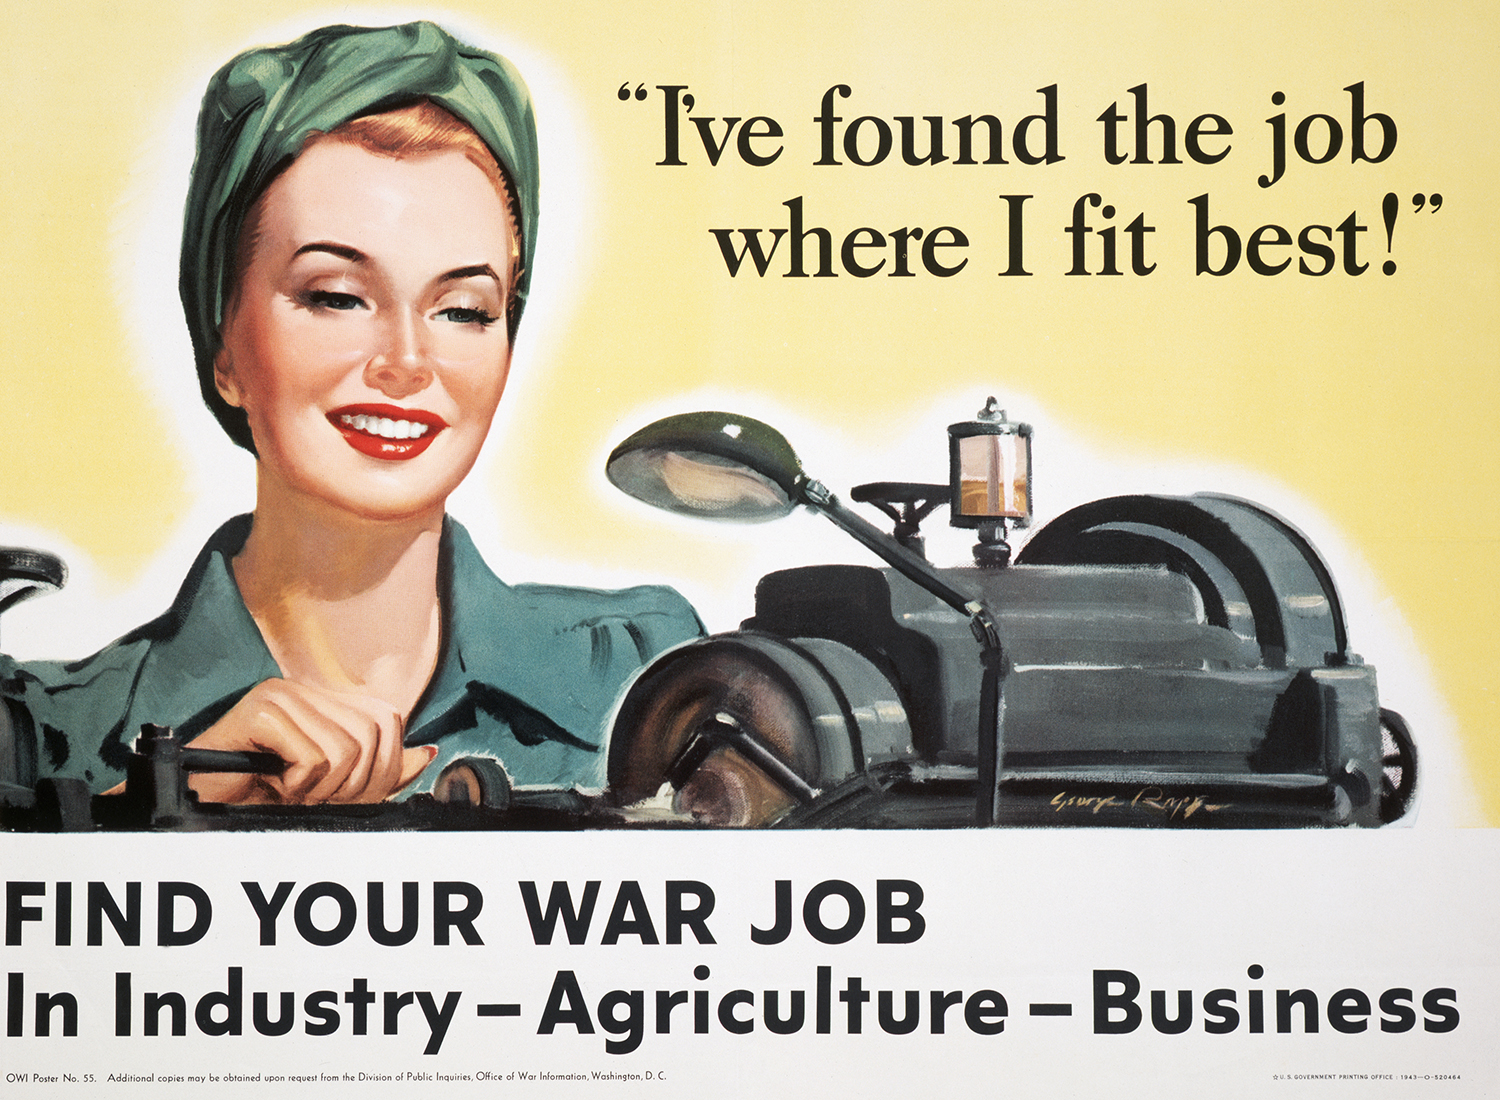 A World War II poster urges women to find a job to aid in the war effort.